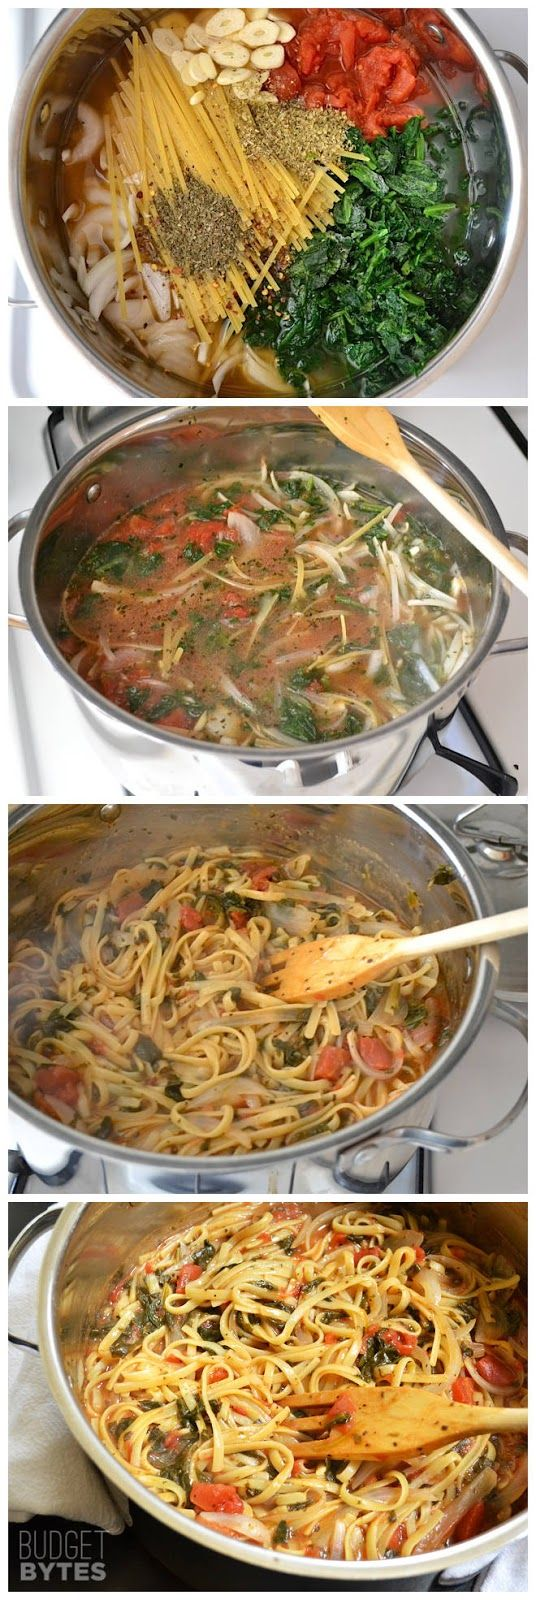 Italian Wonderpot Recipe!! The Pasta Cooks in a Mixture of Broth, Herbs, and Aromatics Making it Super Yummy!!